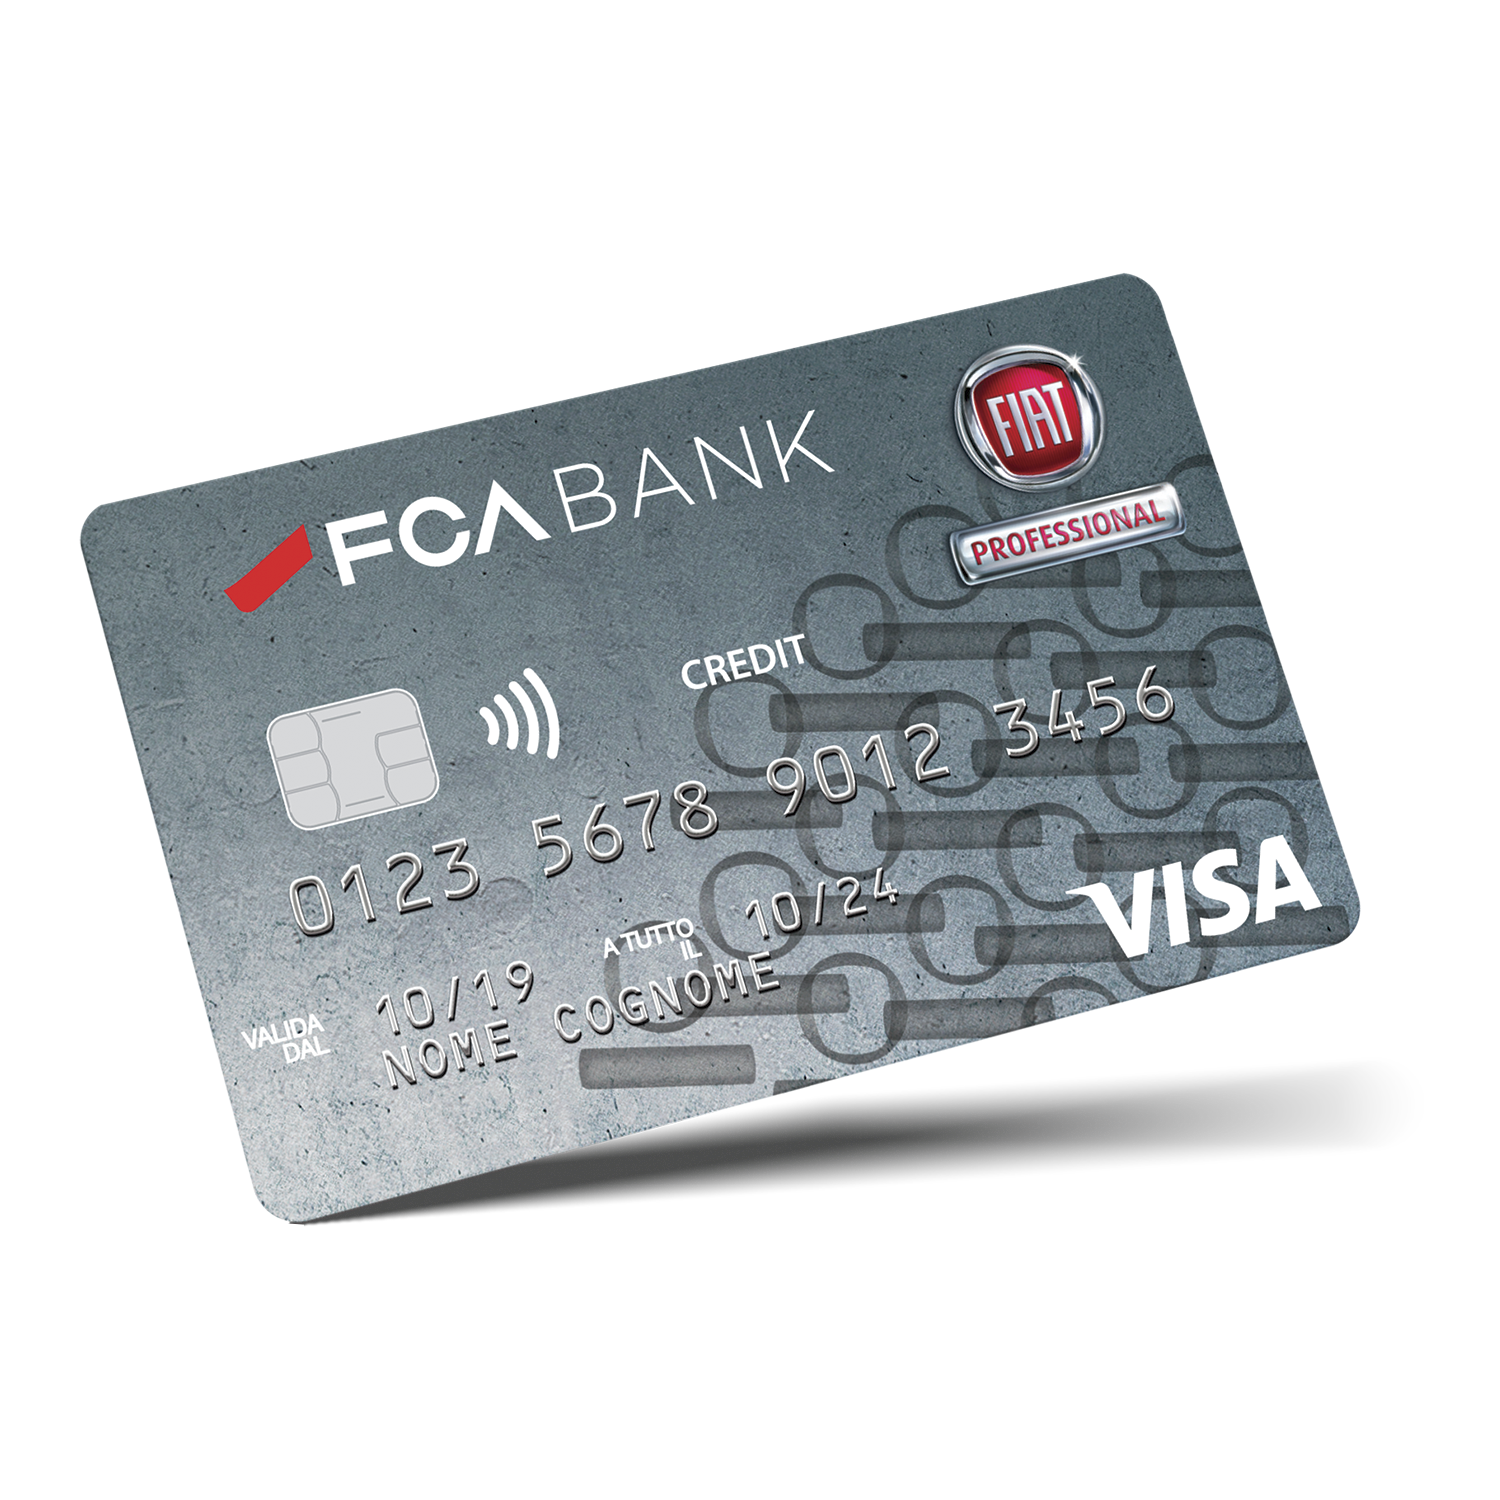 Credit Card Fiat Professional